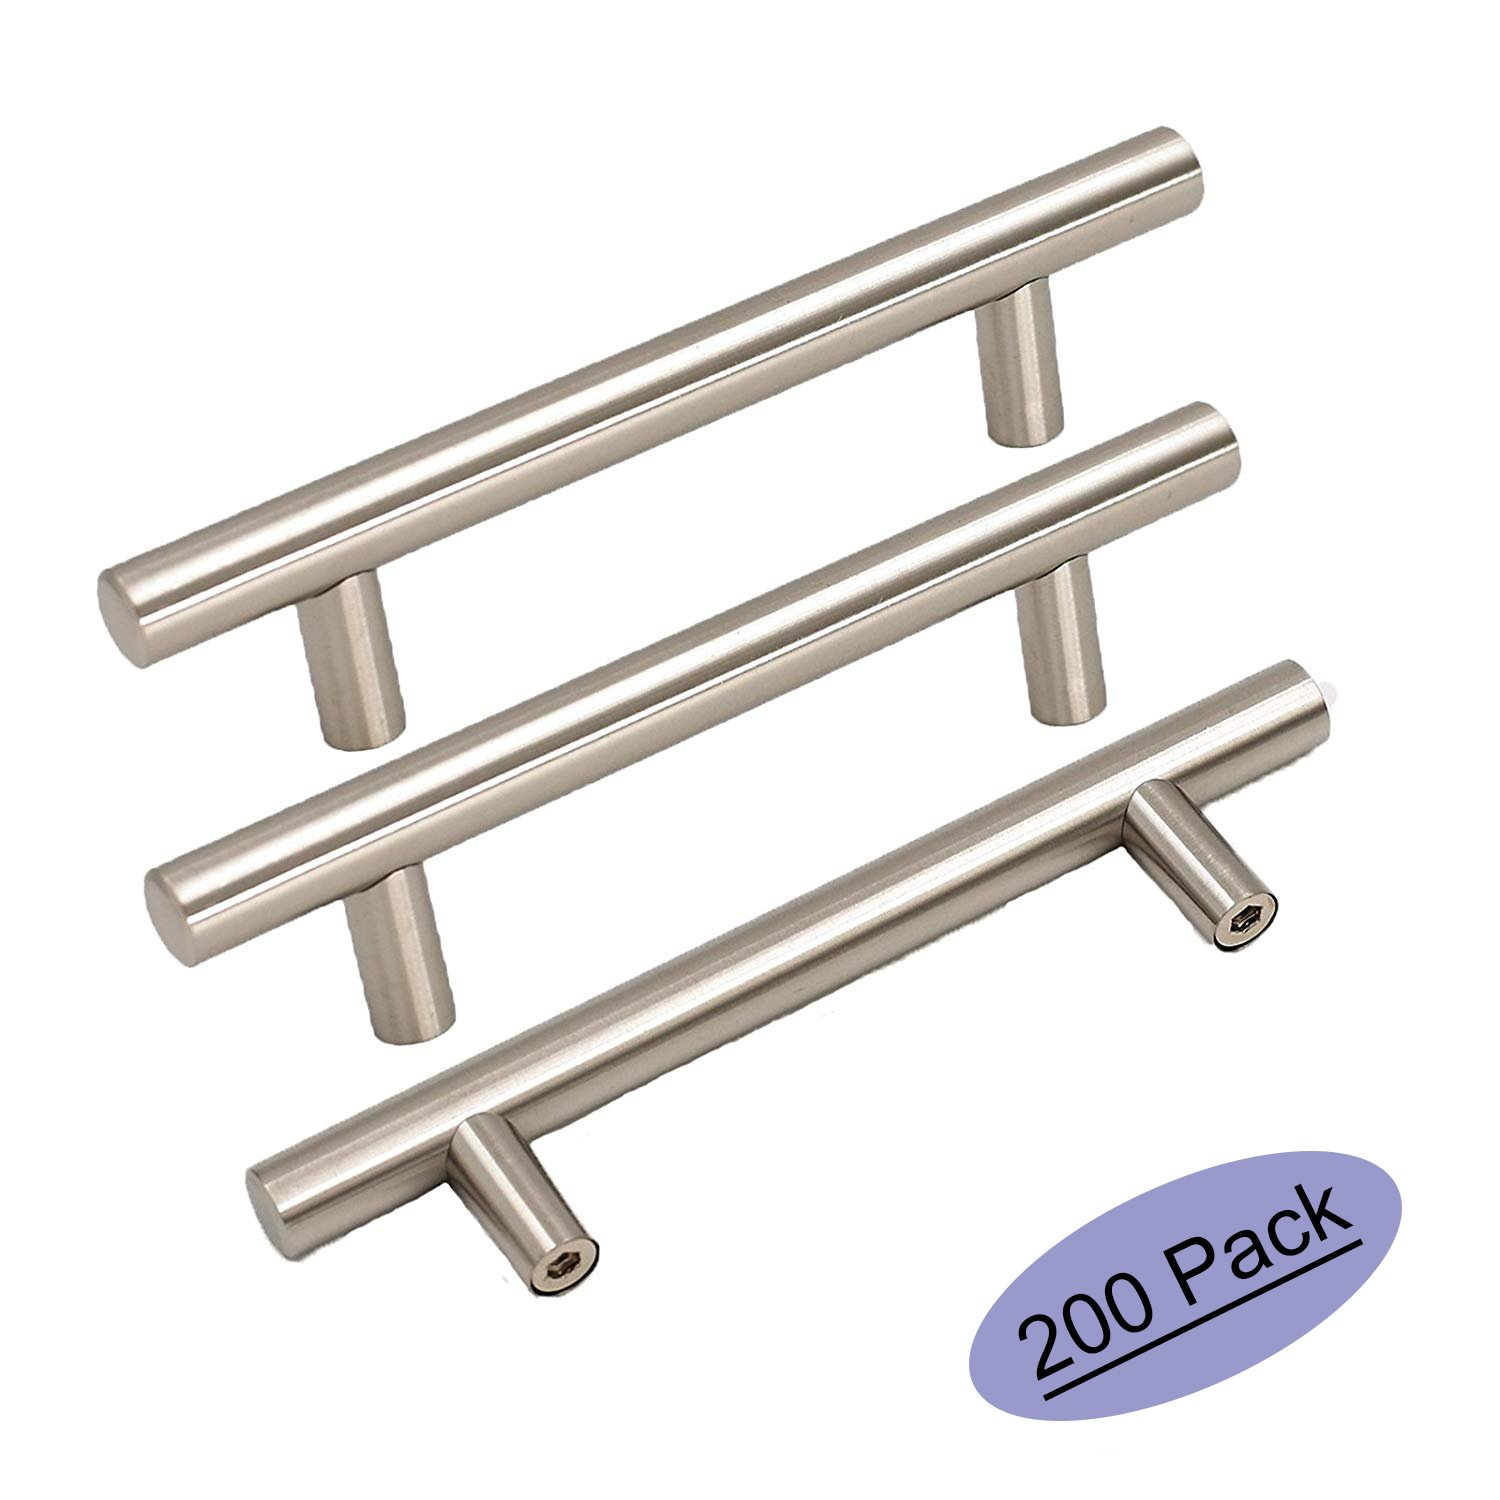 200Pack Goldenwarm Stainless Steel Kitchen Hardware Cabinet Handles and Knob Brushed Nickel T Bar Modern Door Drawer Pull Knobs Hole Spacing 90mm 3-1/2in Overall Length 6in